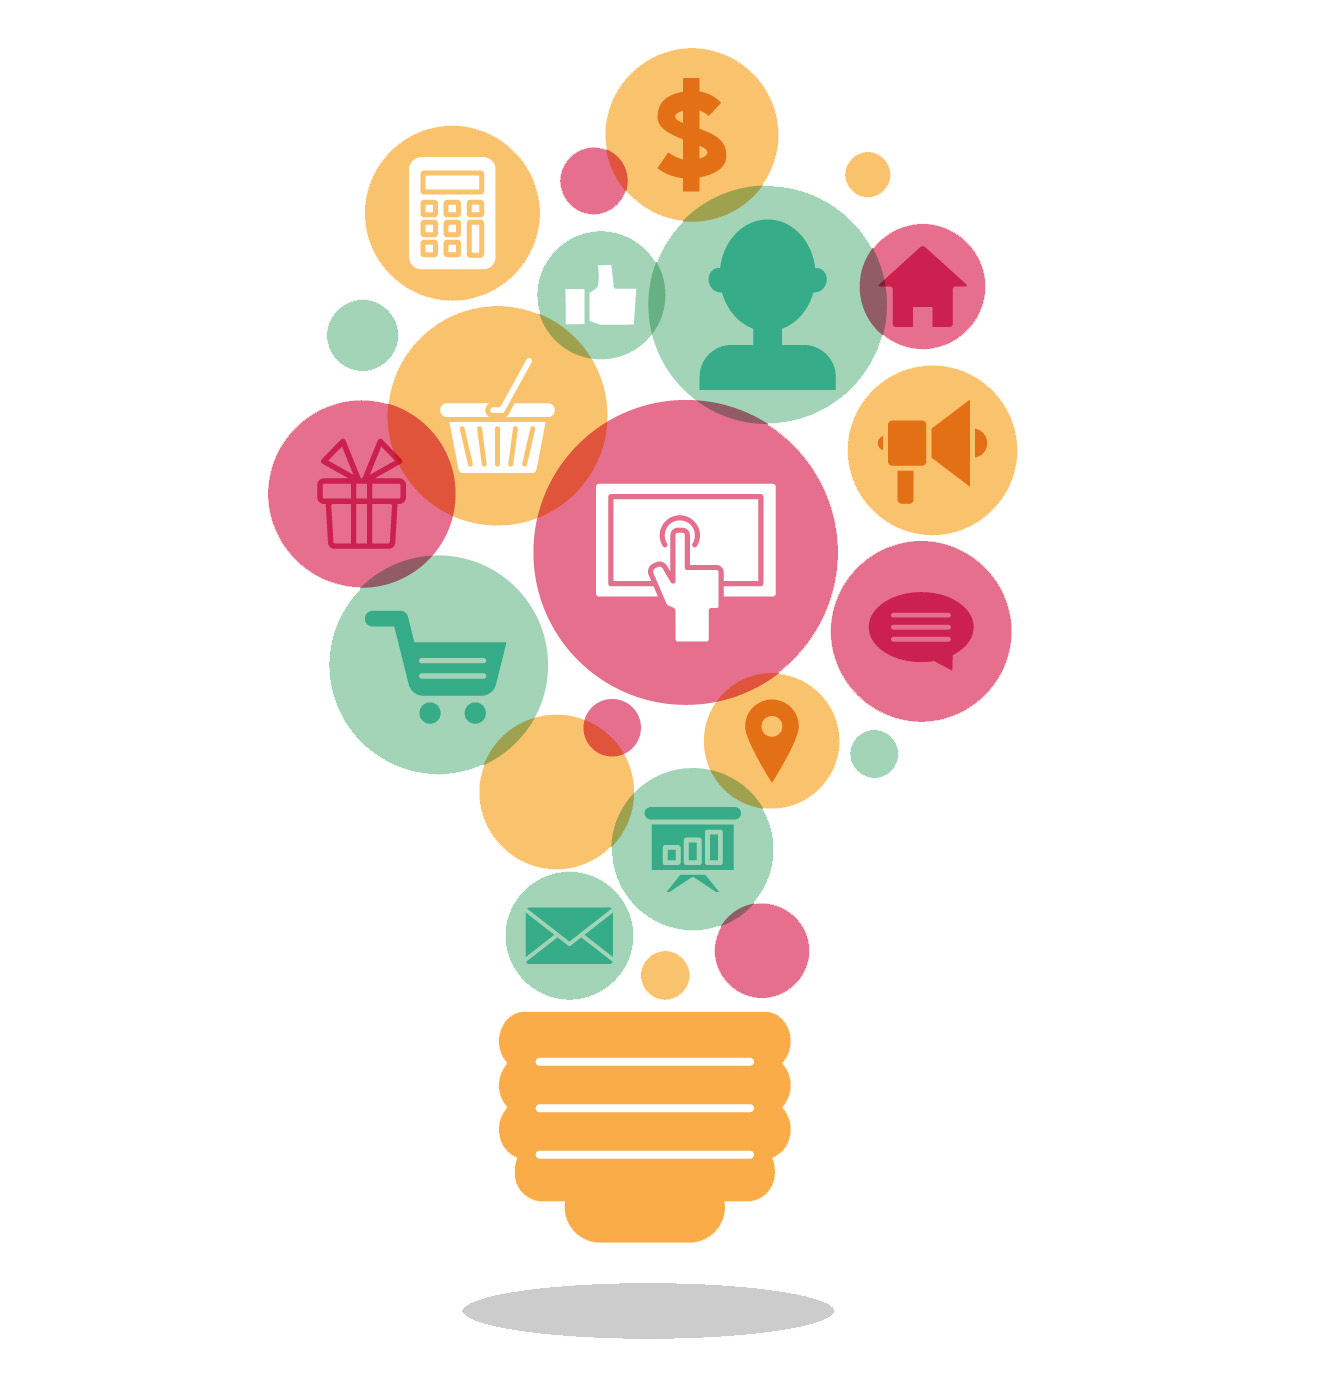 Digital, content, online marketing, services, company in SA, Johannesburg